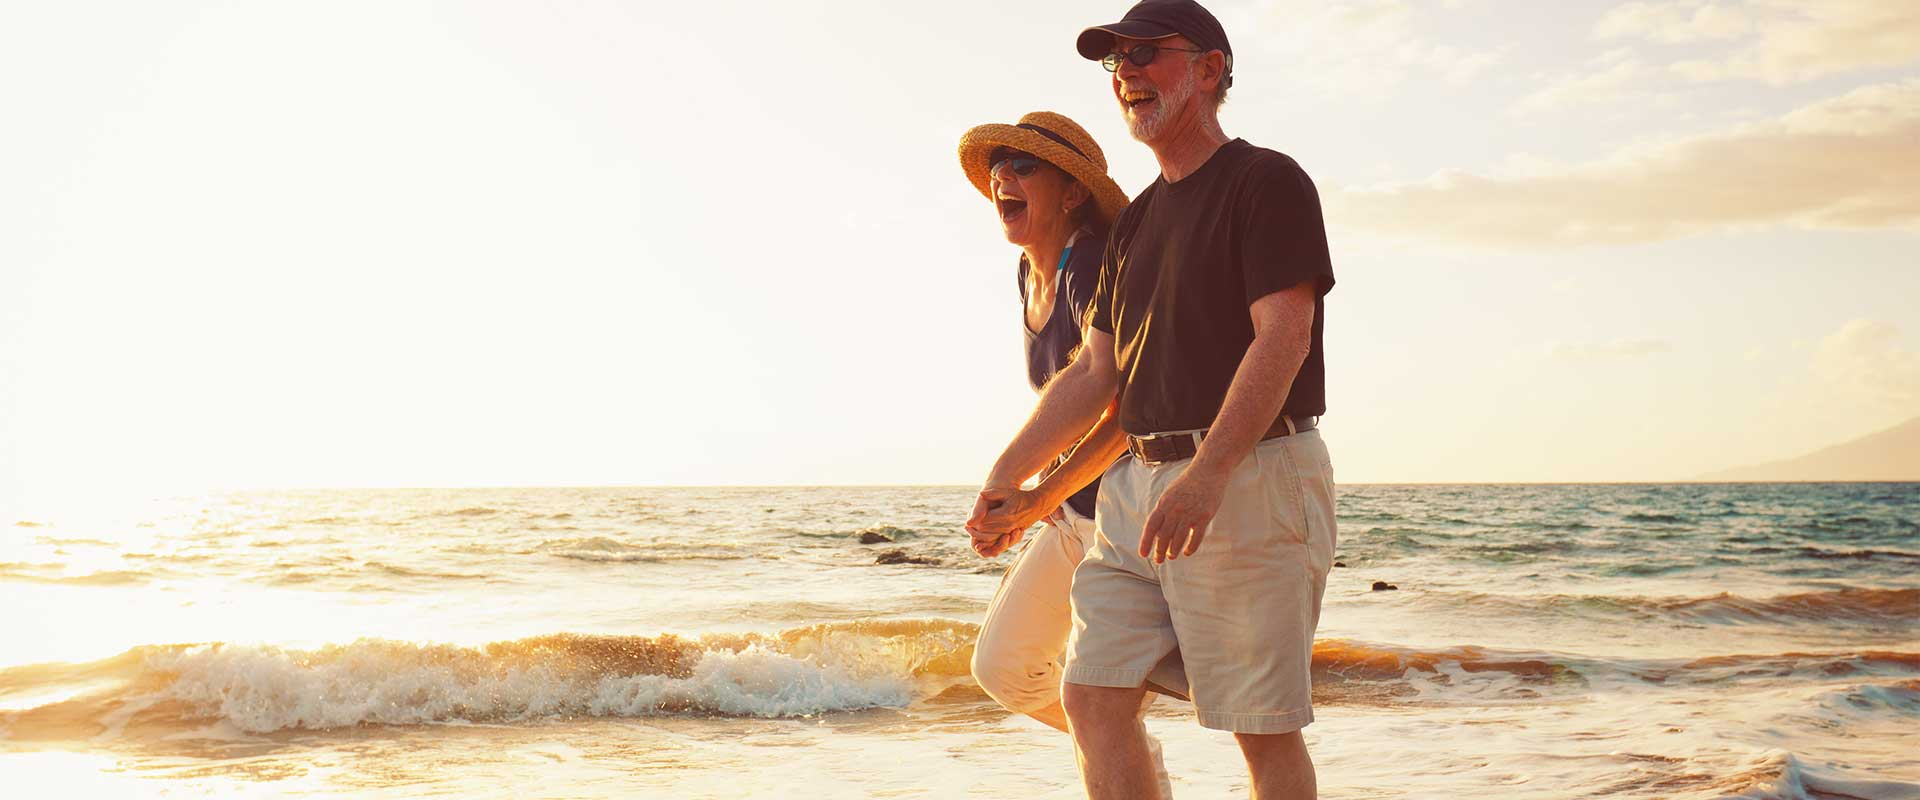 Couple walking on the beach after Cataracts